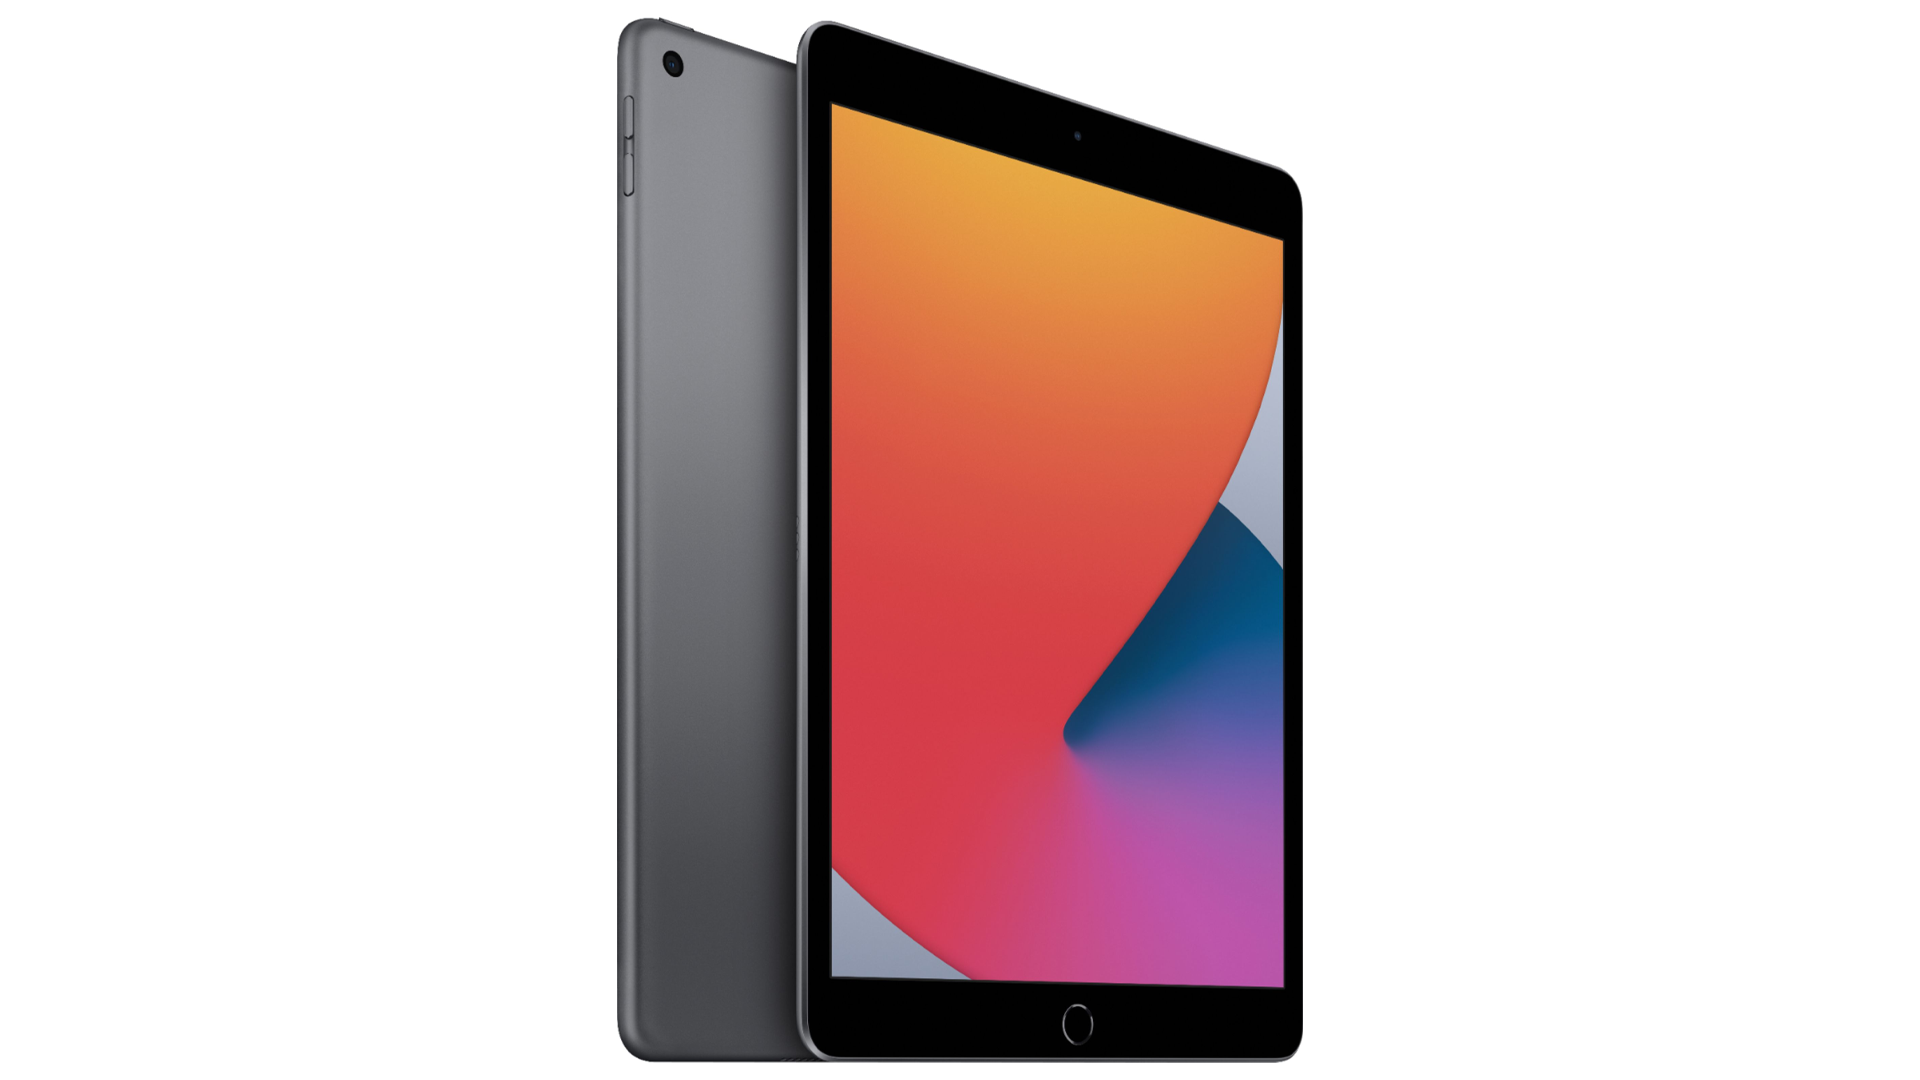 Save $50 on the 128GB 10.2-inch iPad During Best Buy's Sale thumbnail